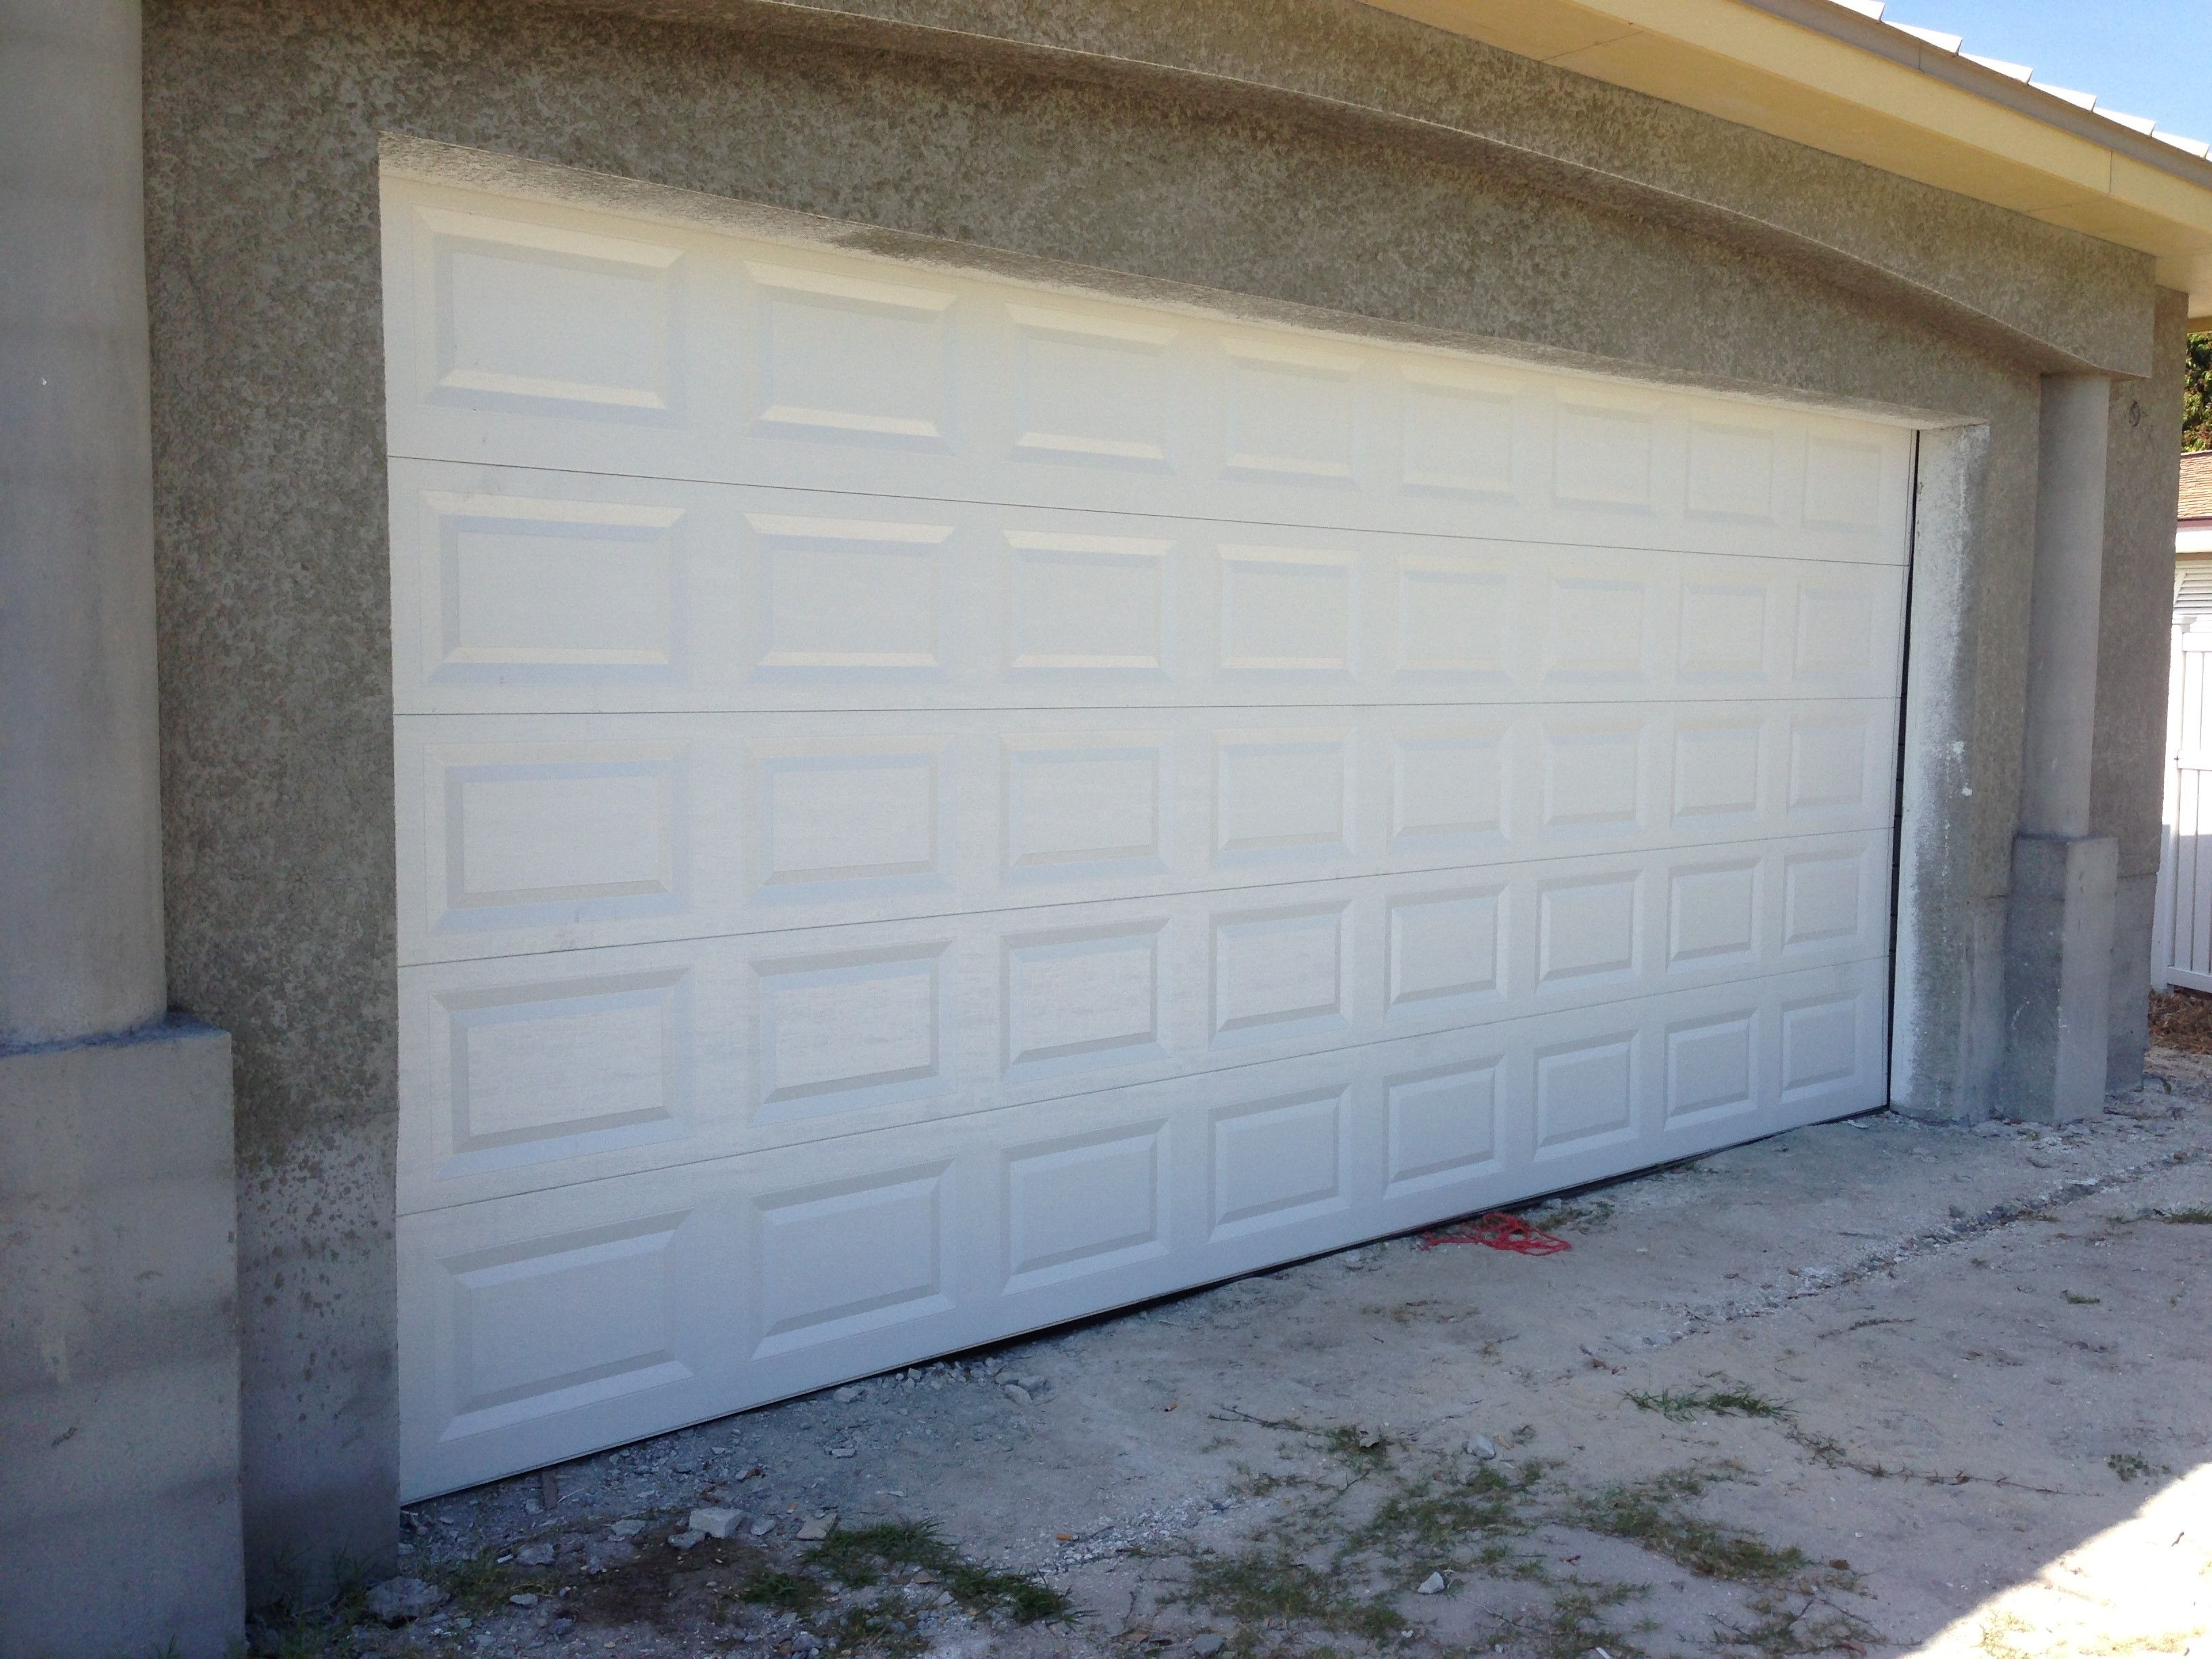 2448 #71644B New White Garage Door Installation. Garage Door Installation Pint  save image Garage Doors Installers 37773264